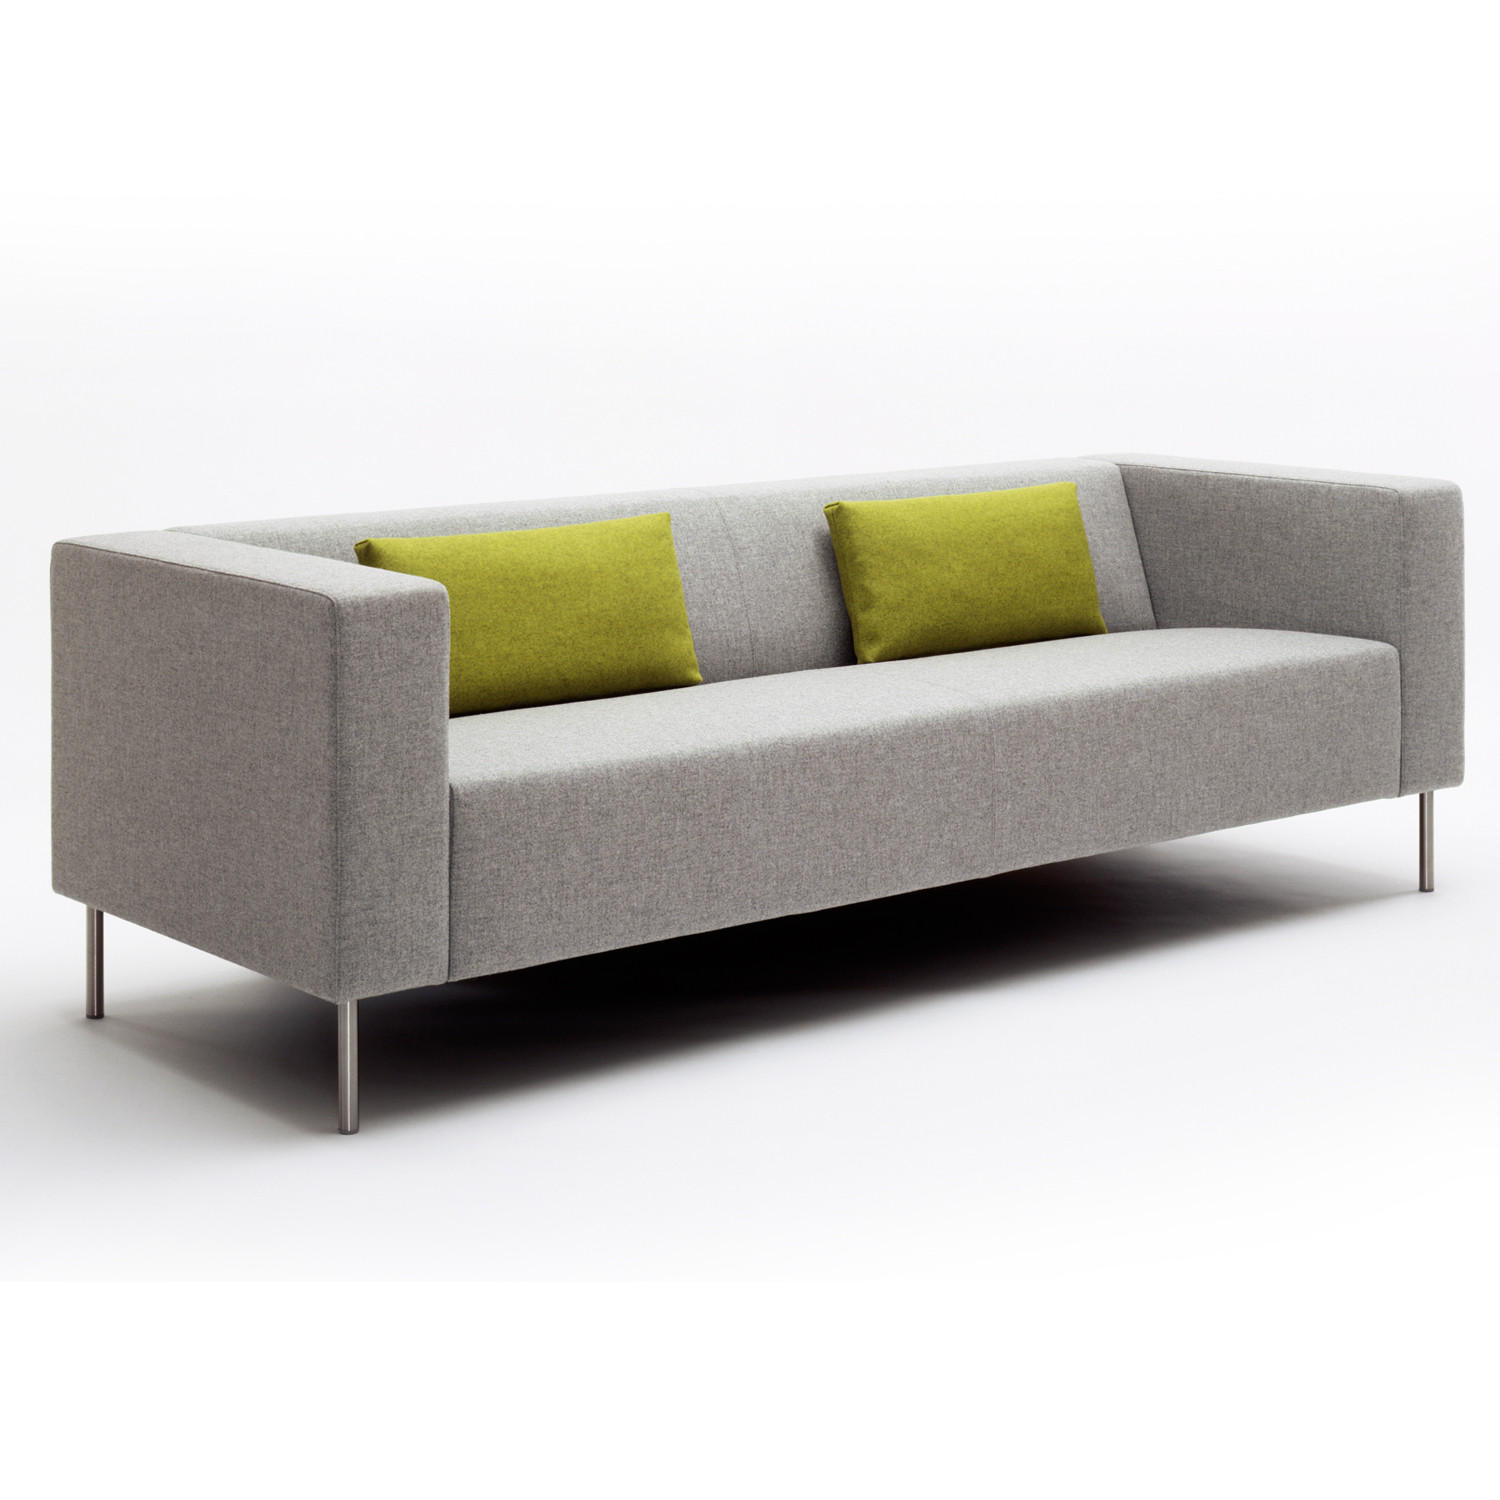 HM18 Reception Three-Seat Sofa